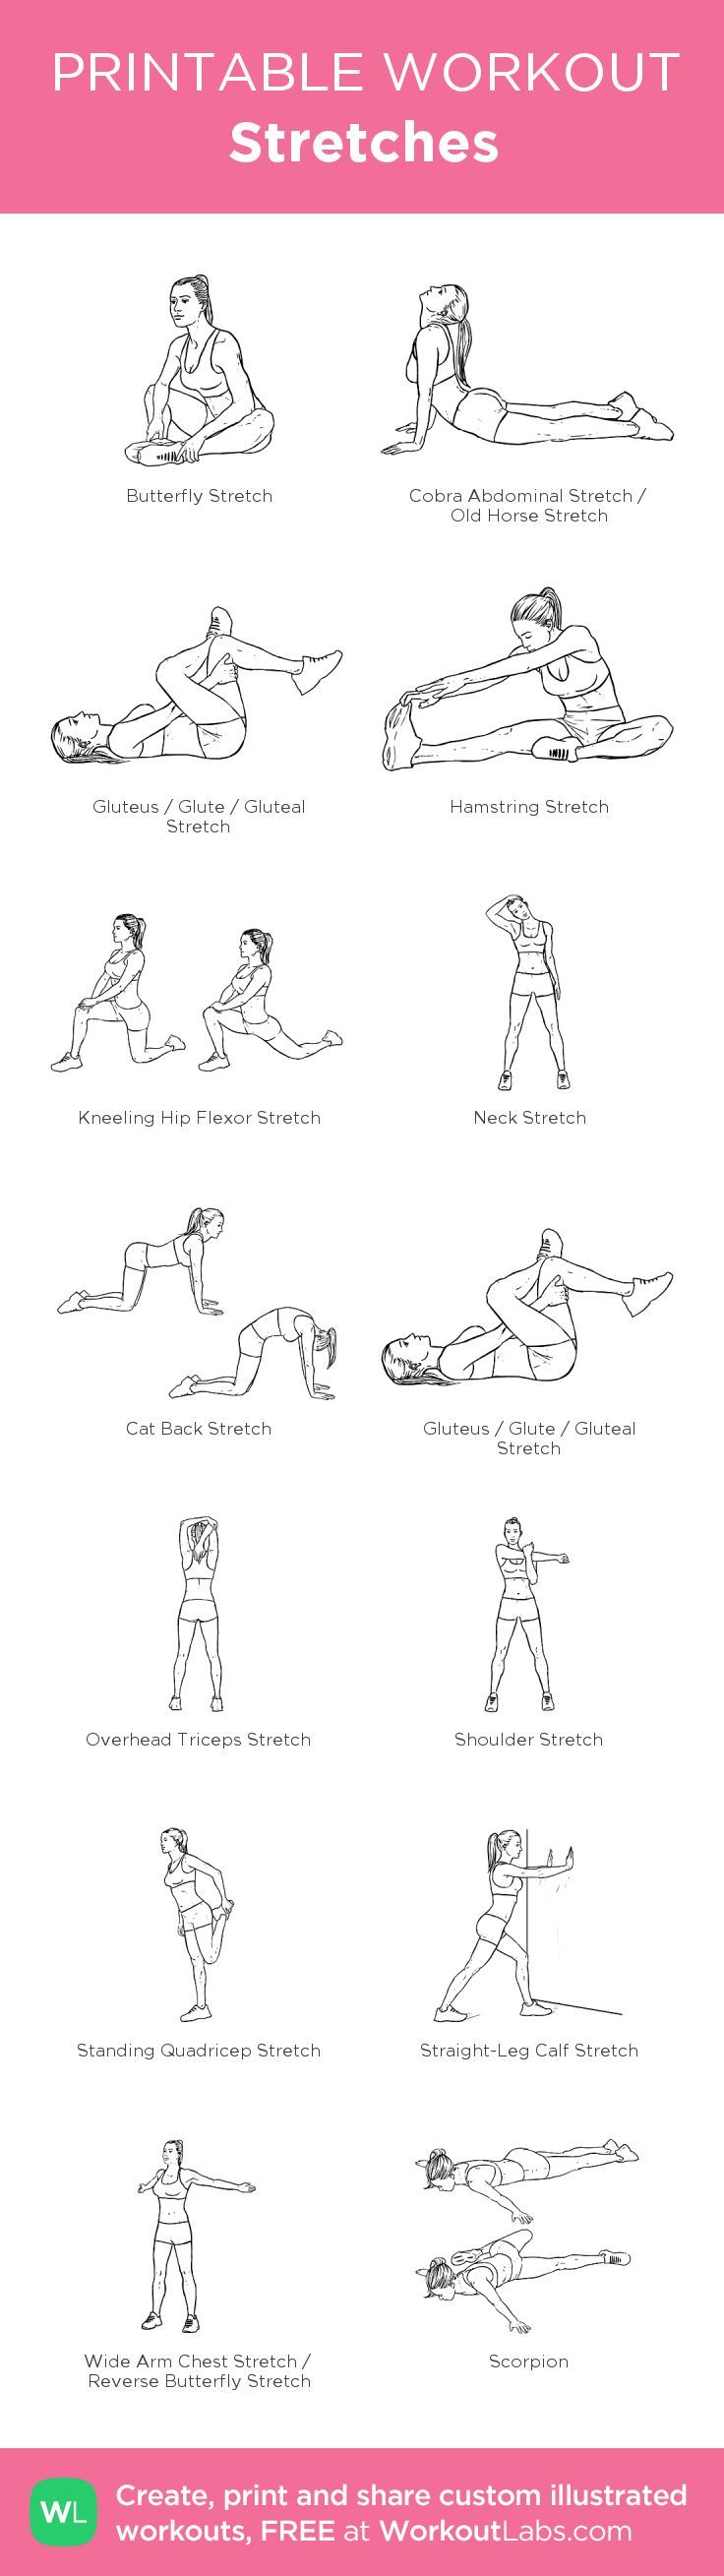 Stretches:my visual workout created at WorkoutLabs.com • Click through to customize and download as a FREE PDF! #customworkout